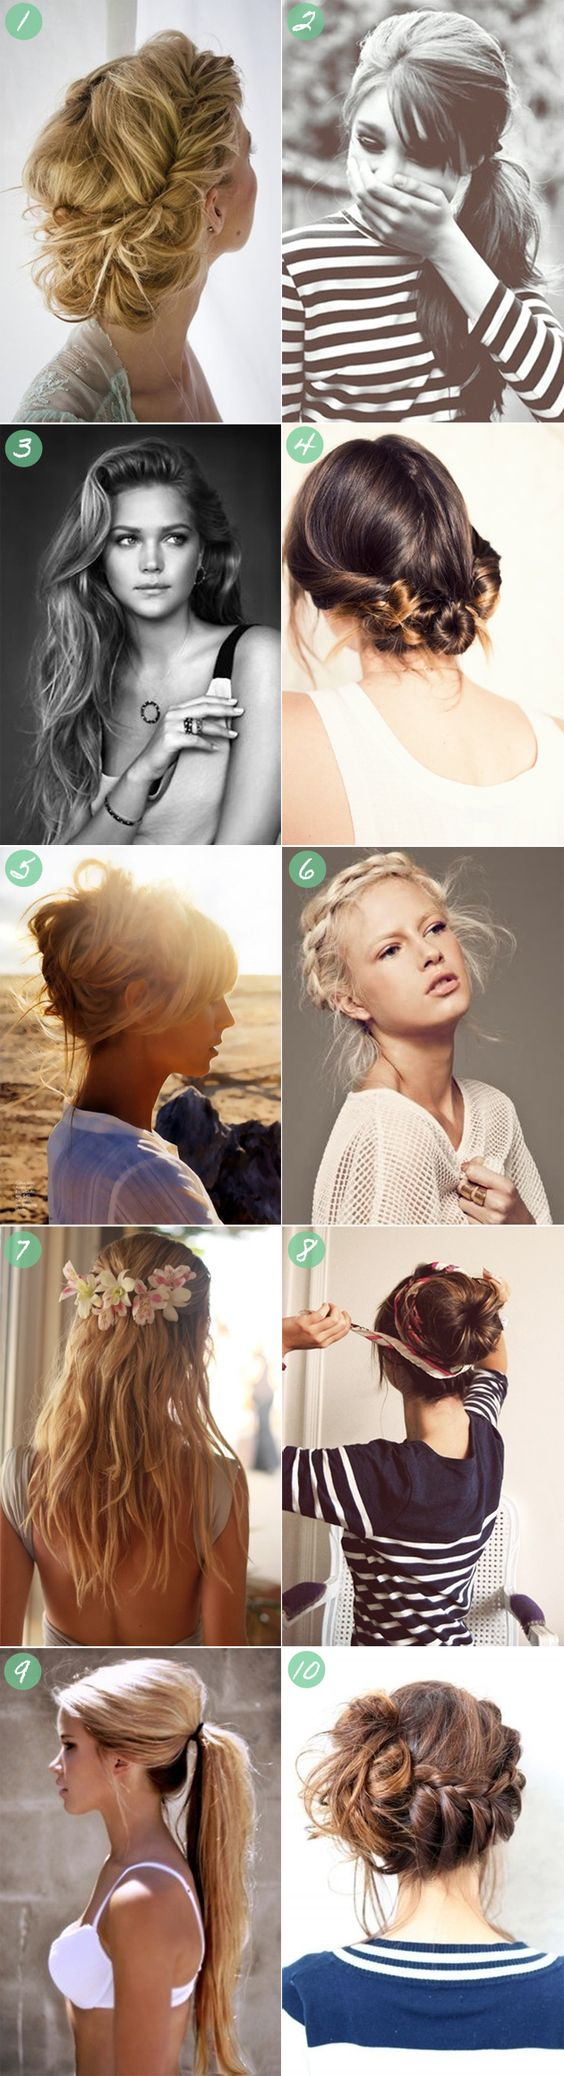 Summer Hair Styles